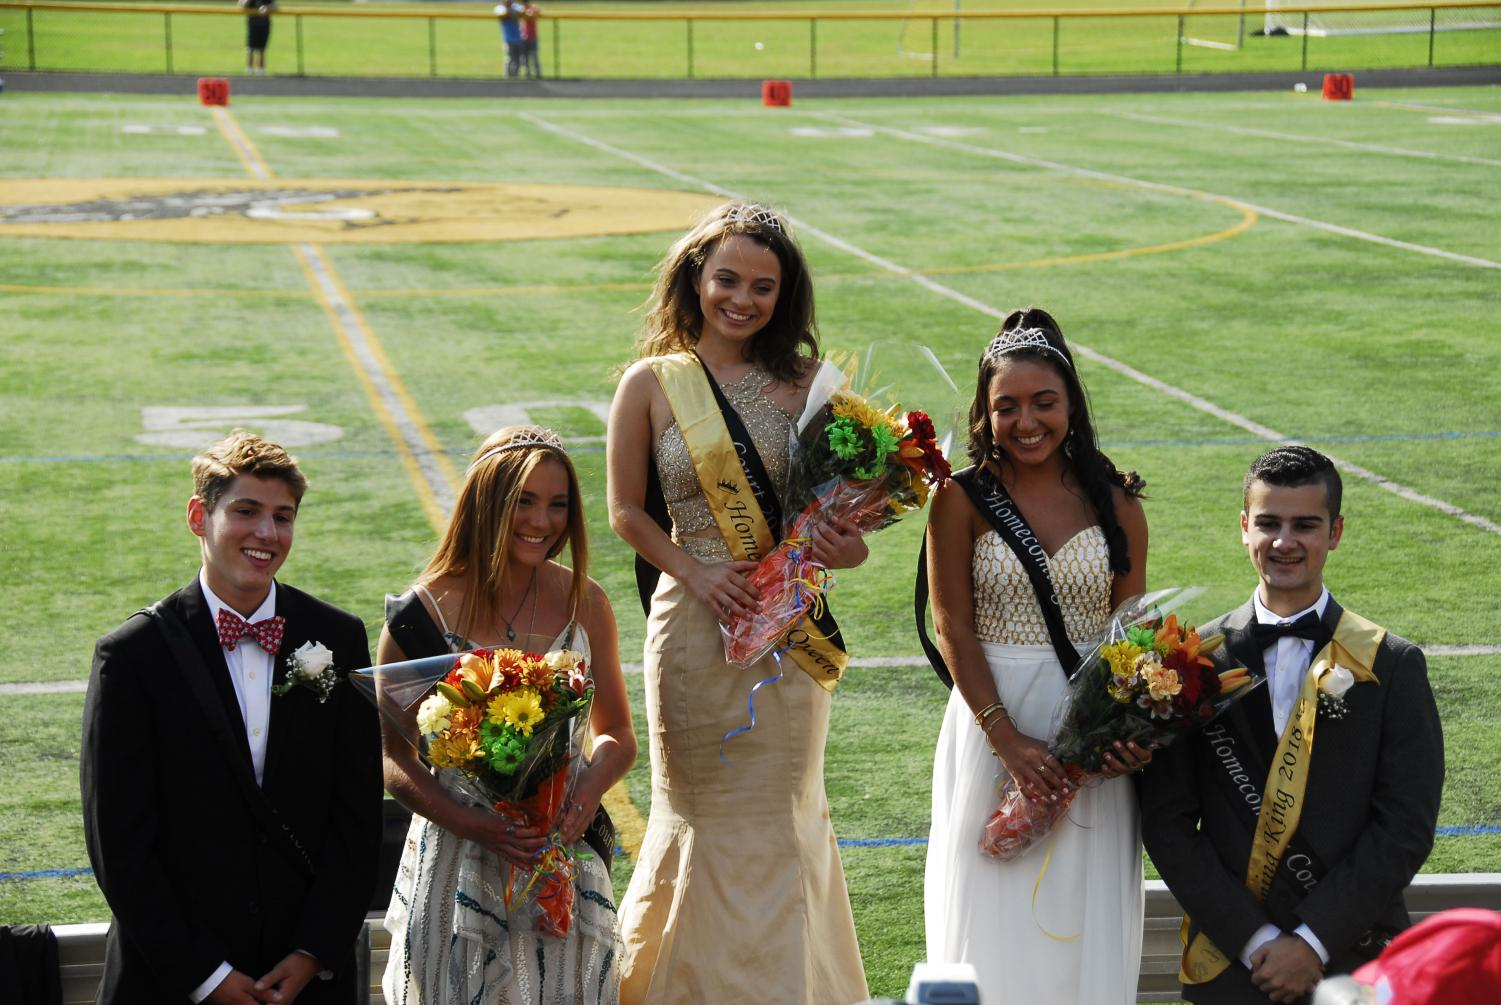 The 2018 Homecoming Court